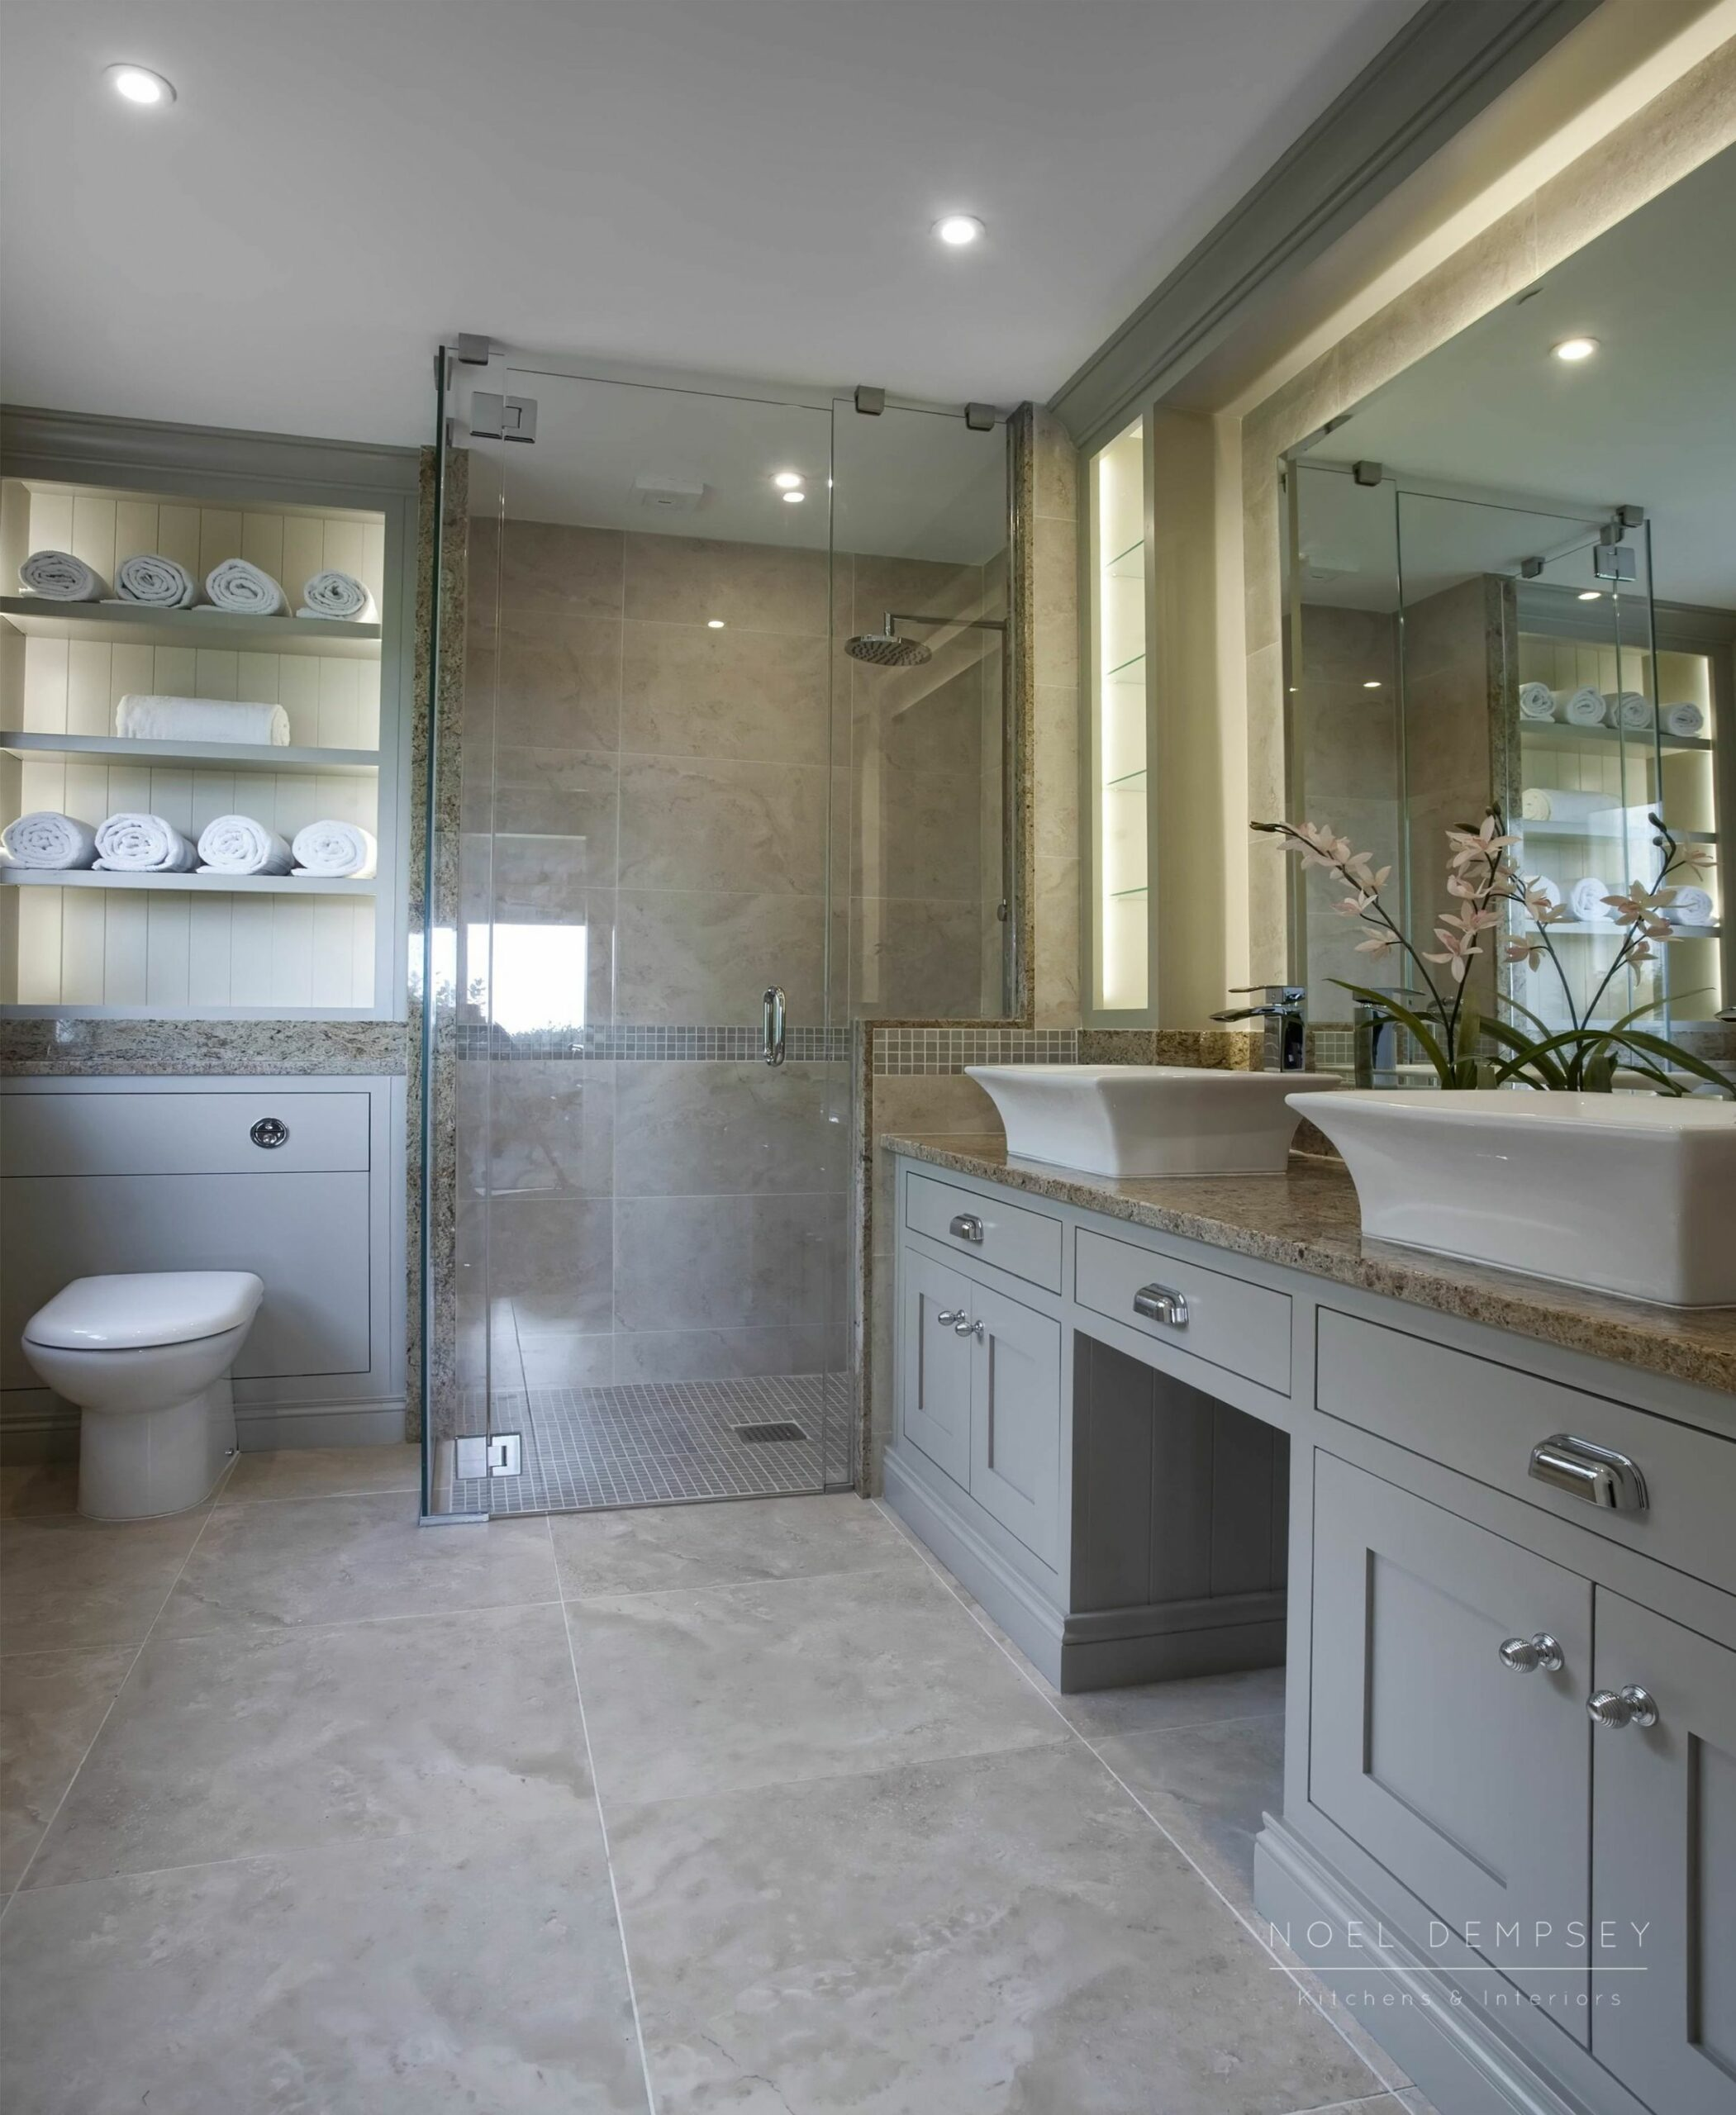 Bathroom Ideas Ireland - Best Bathroom Ideas - bathroom ideas dublin